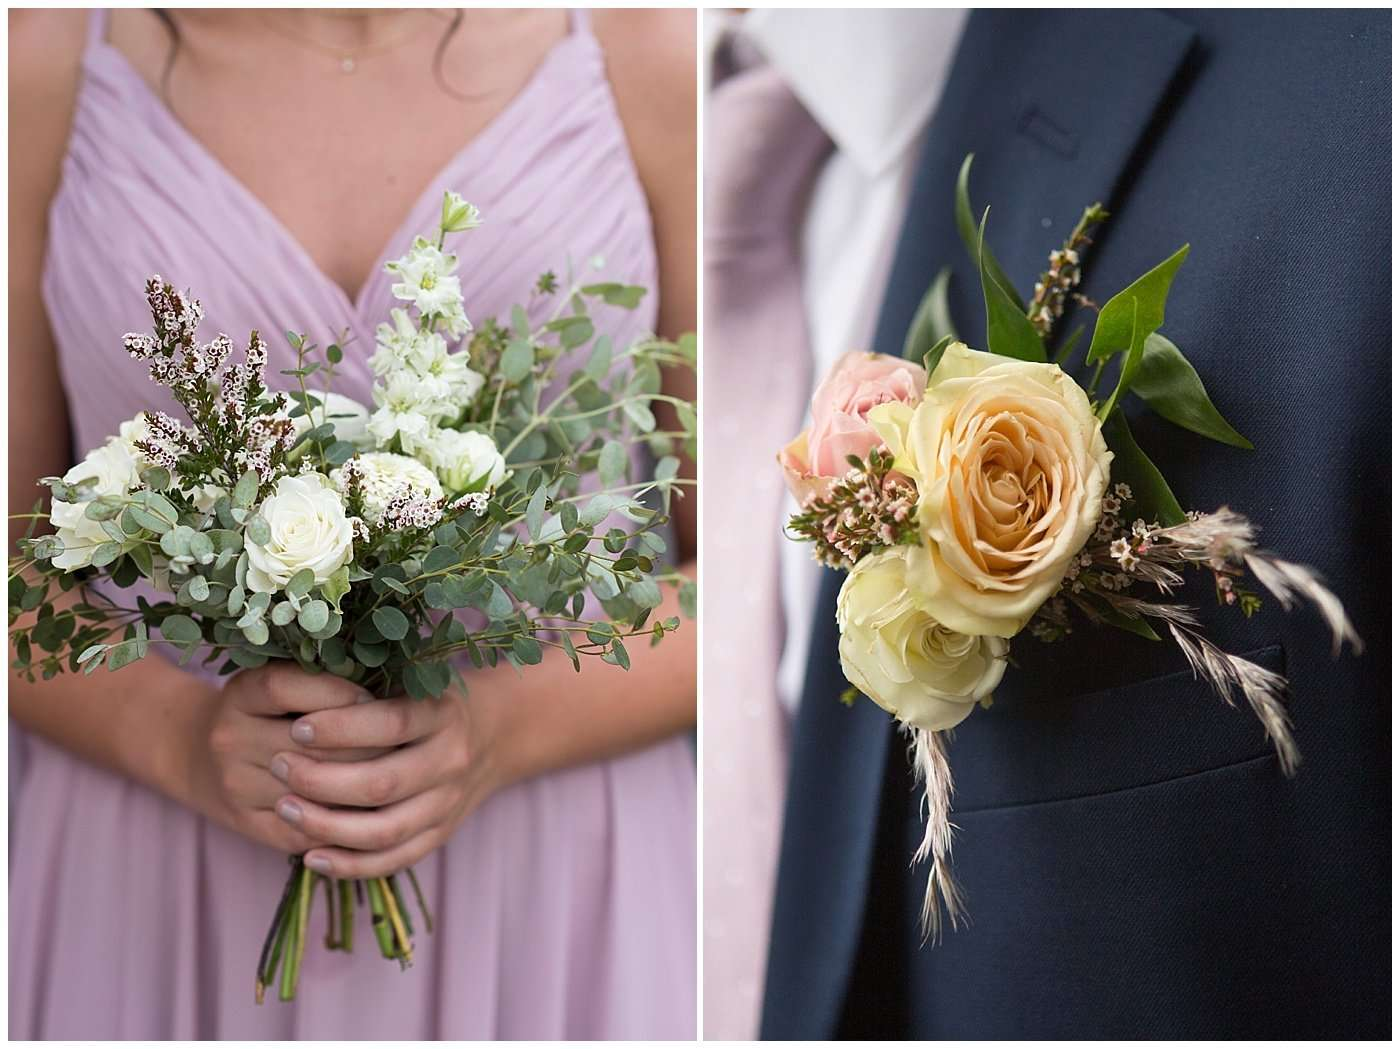 Jake & Abbie | A Swoon-Worthy Wedding at Breathtaking Garden Estate 38